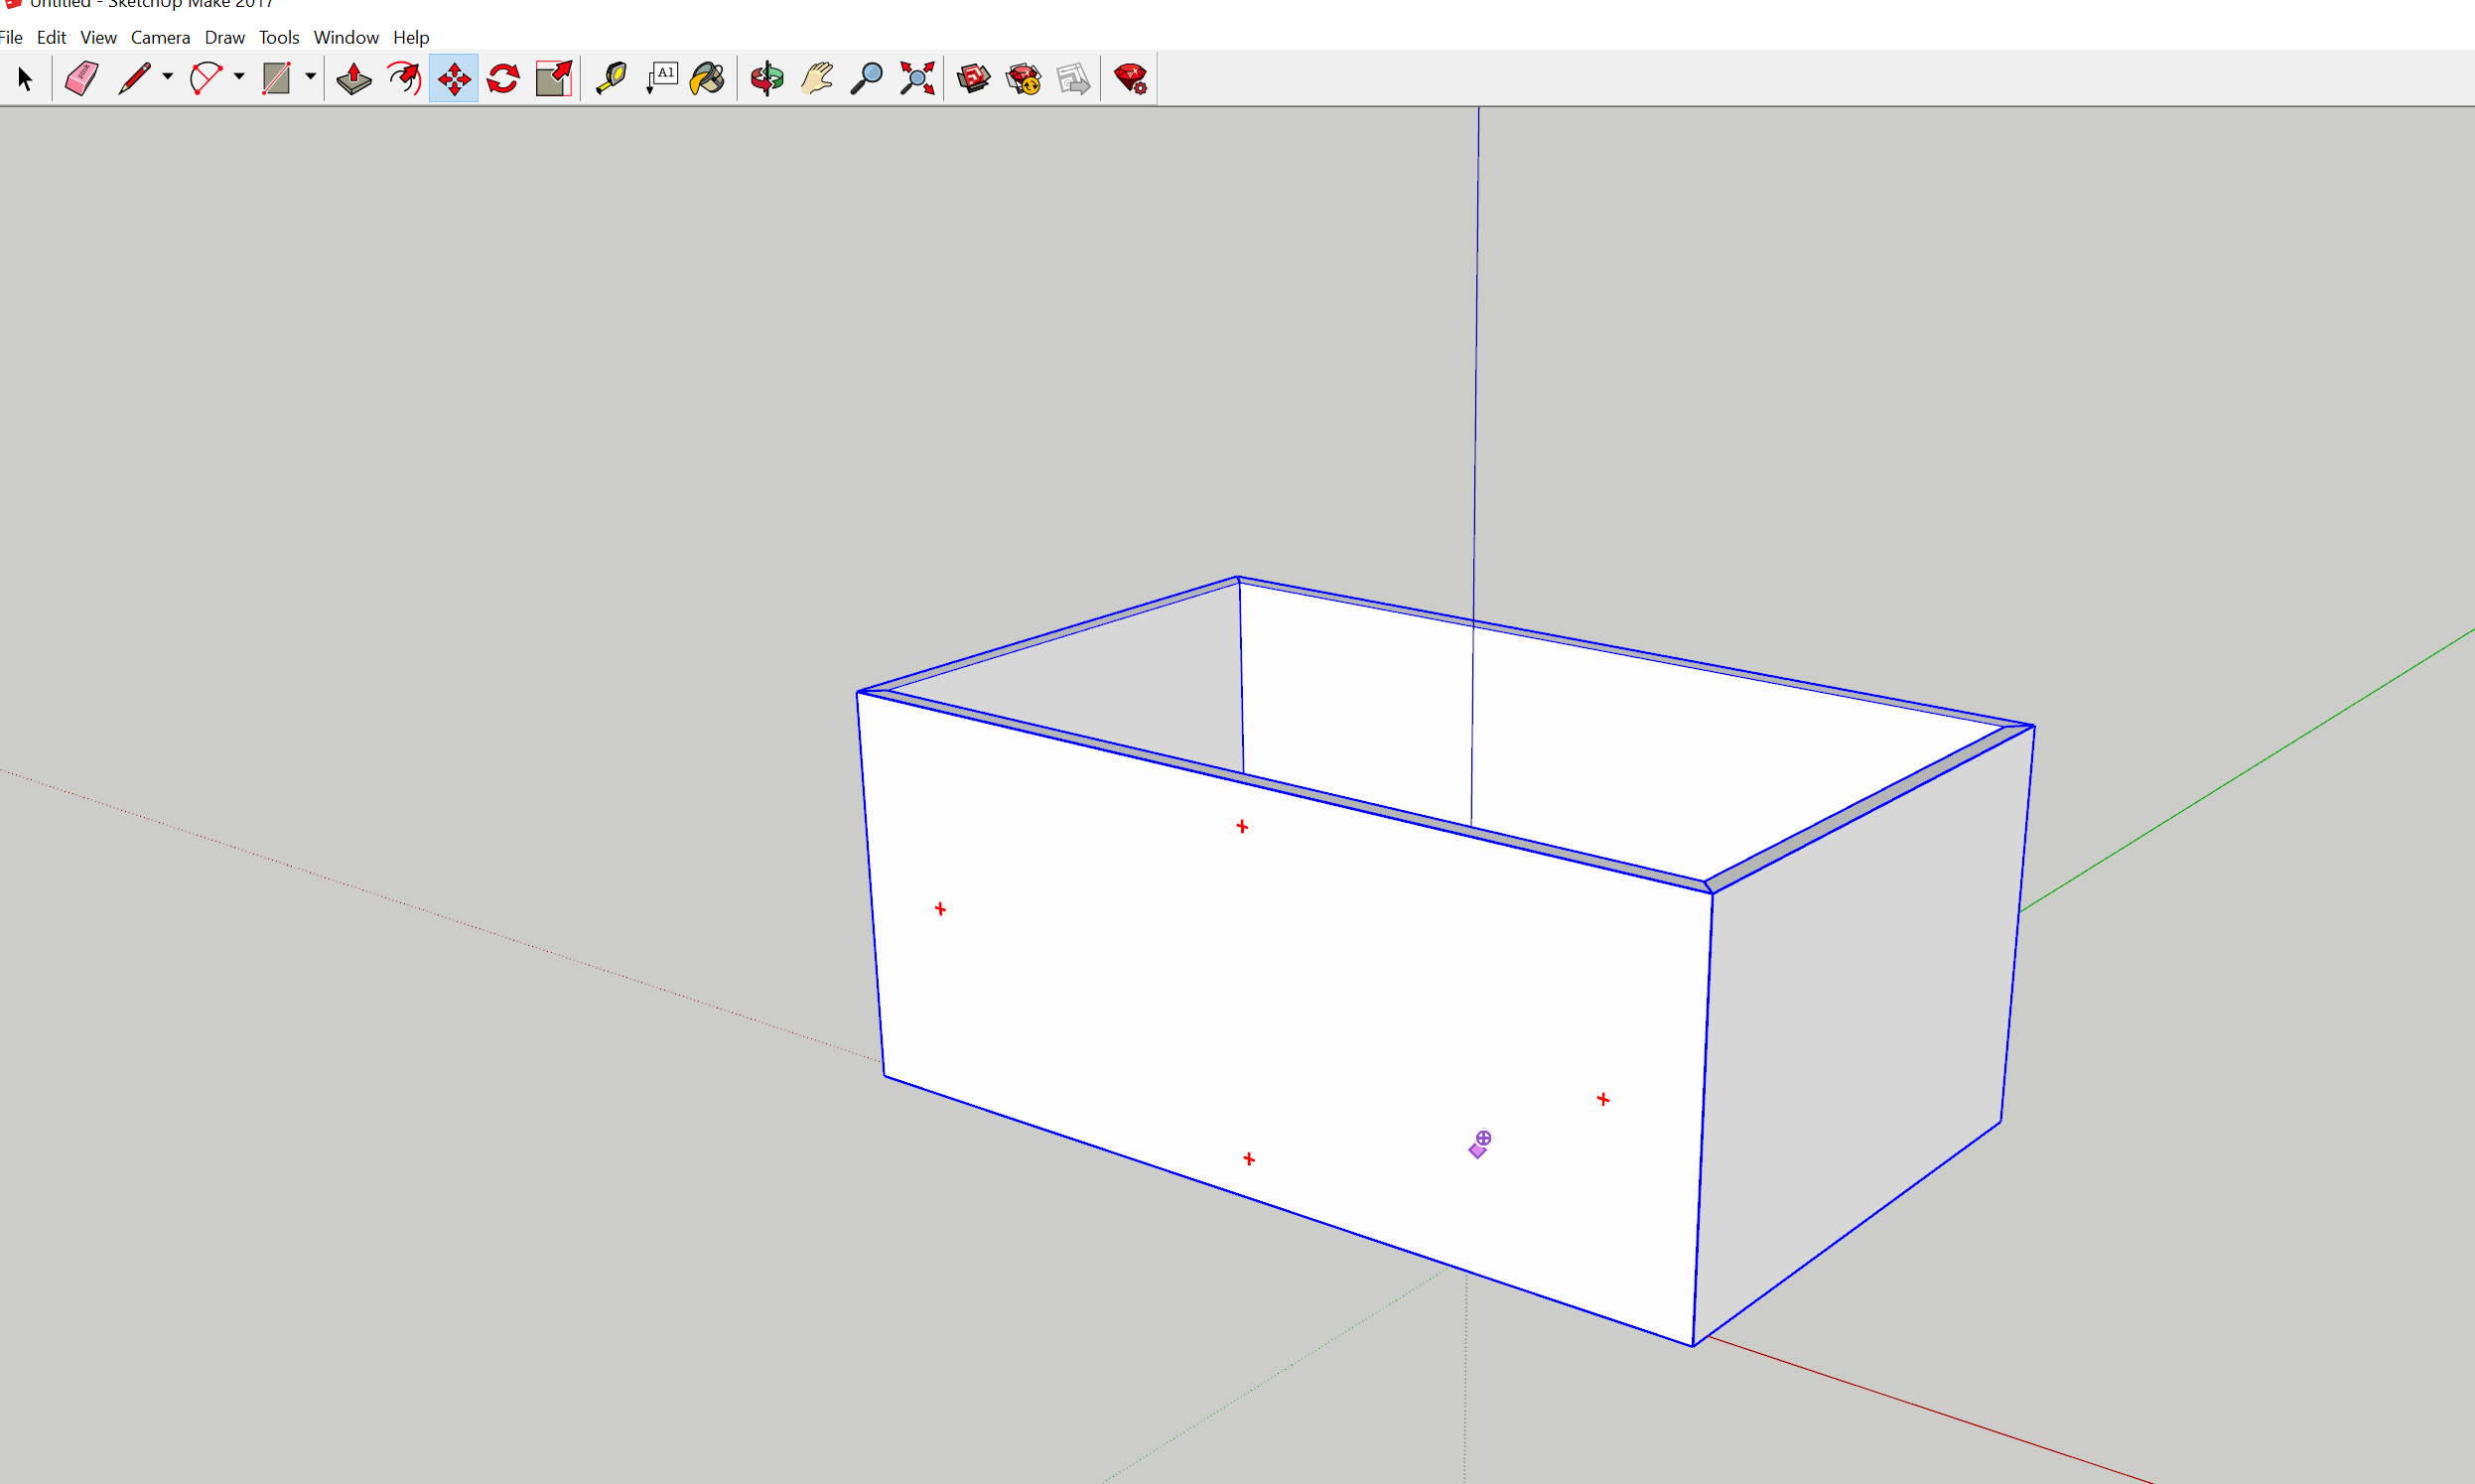 convert vectorworks to sketchup - General Discussion